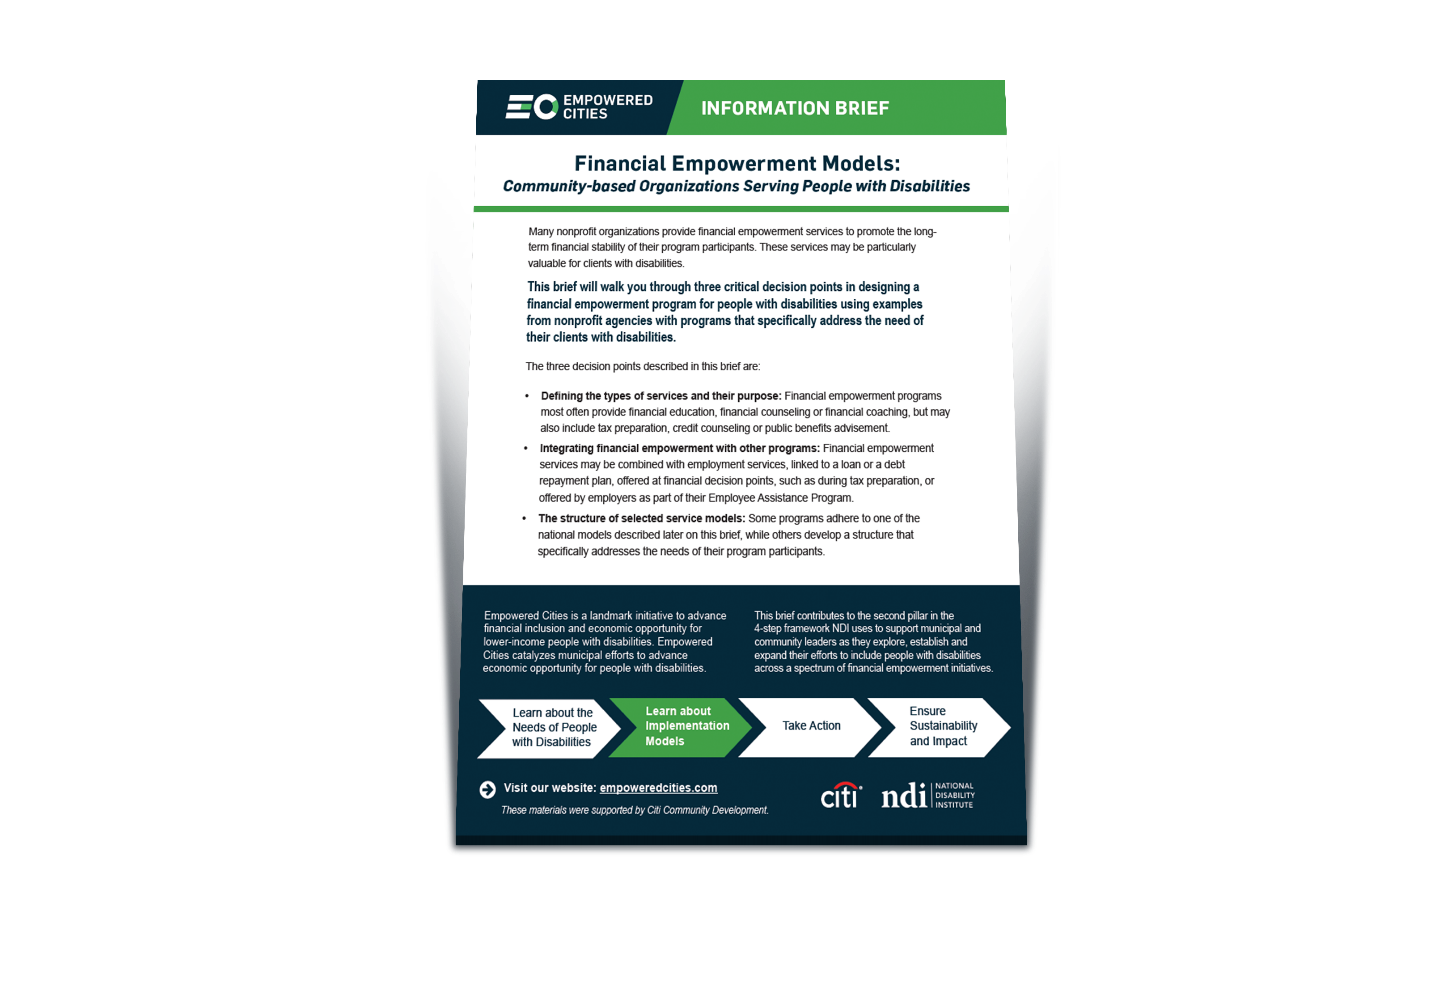 Financial Empowerment Models: Community-Based Organizations Serving People with Disabilities